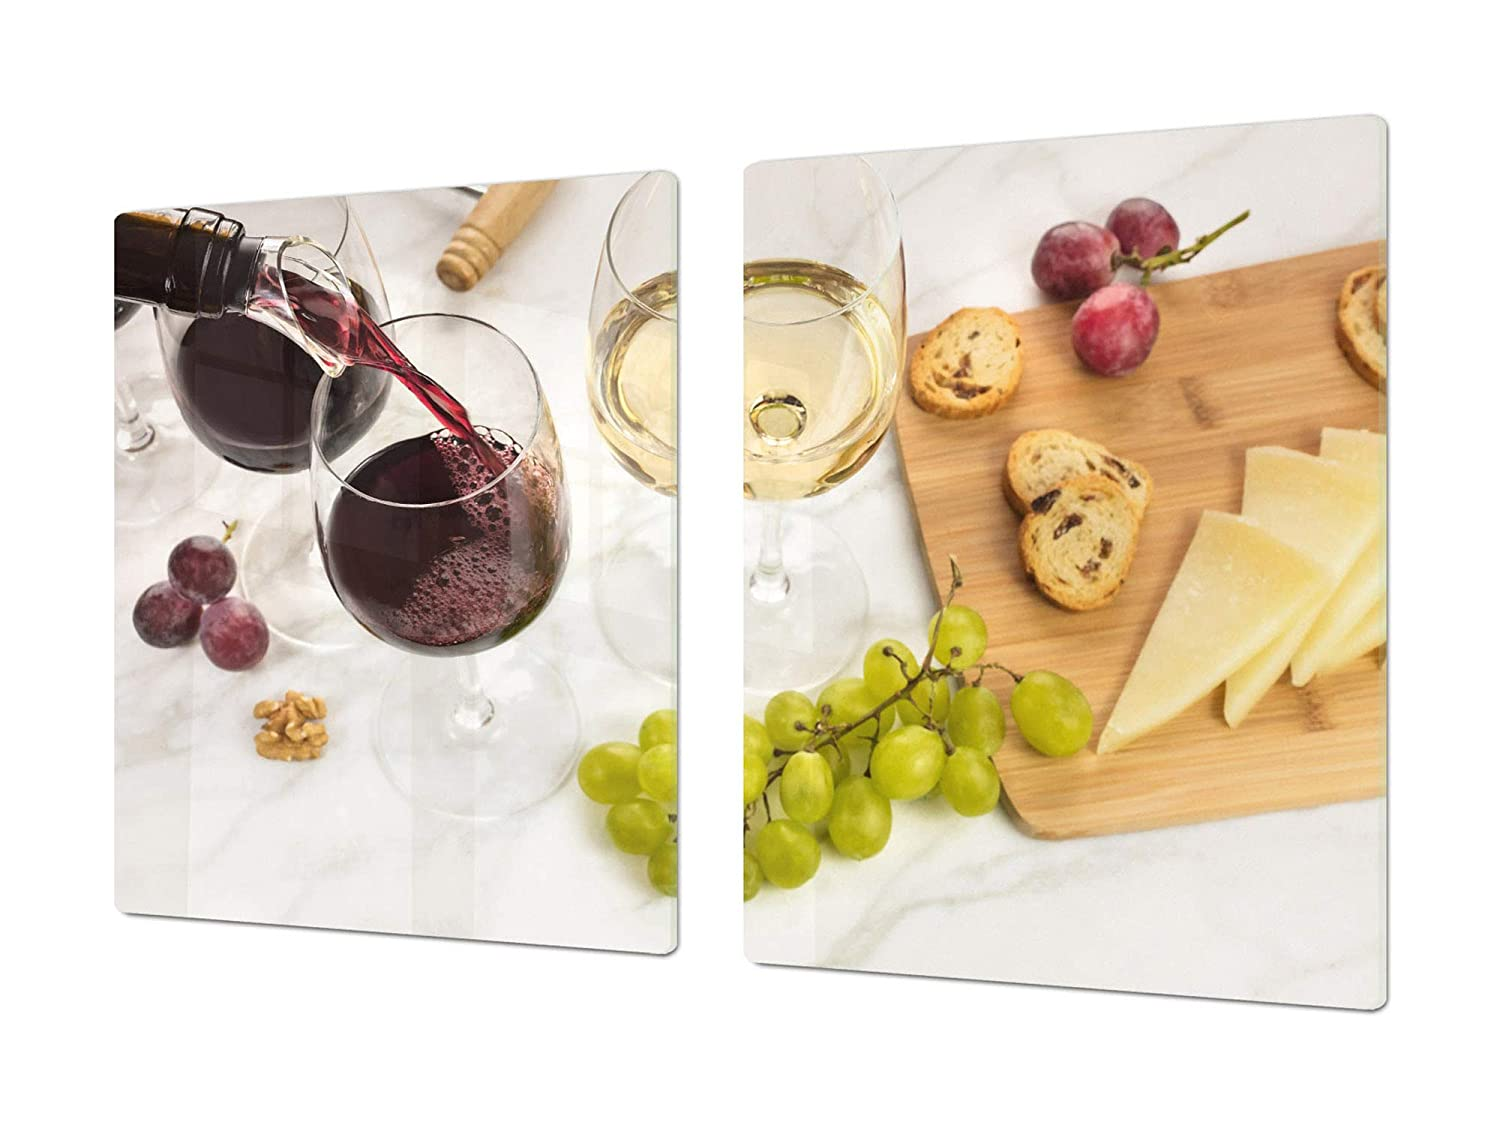 French wines 1 2x40x52 Big Kitchen Board & Induction Cooktop Cover – Glass Pastry Board – Heat and Bacteria Resistant;Single  80 x 52 cm (31,5  x 20,47 ); Double  40 x 52 cm (15,75  x 20,47 ); Wine Series DD04